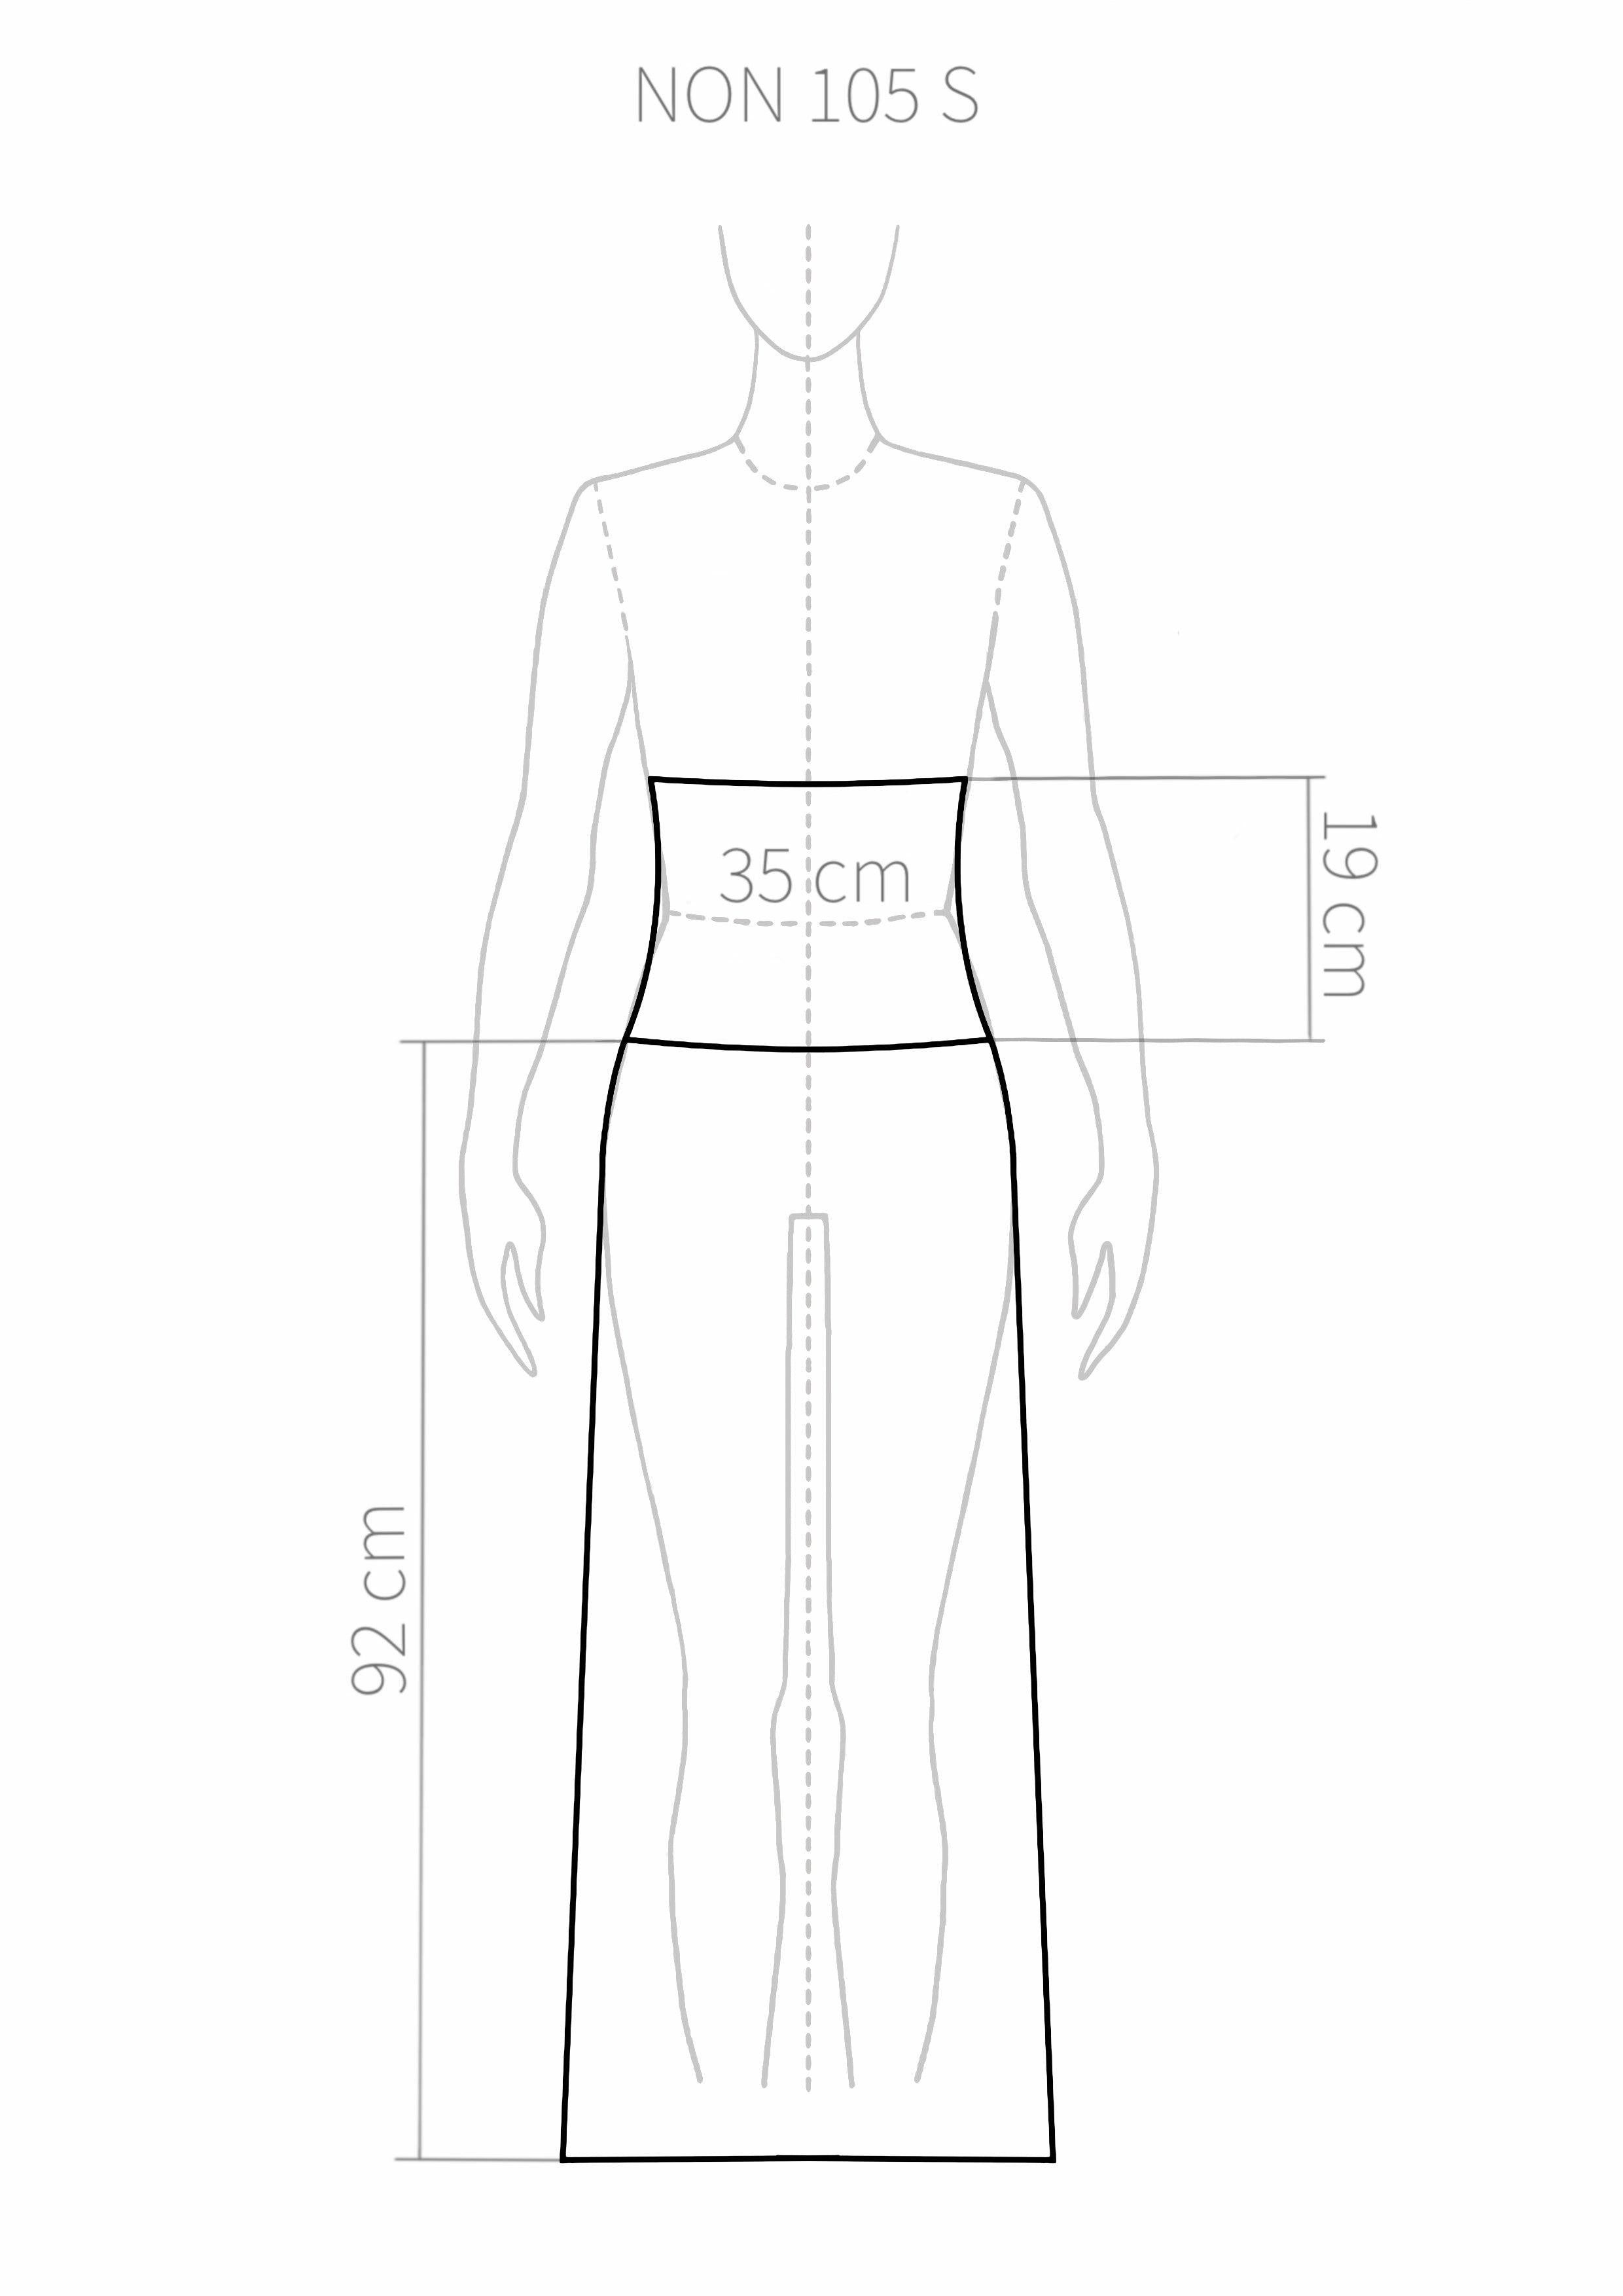 NON105 Long skirt with turn-down waist